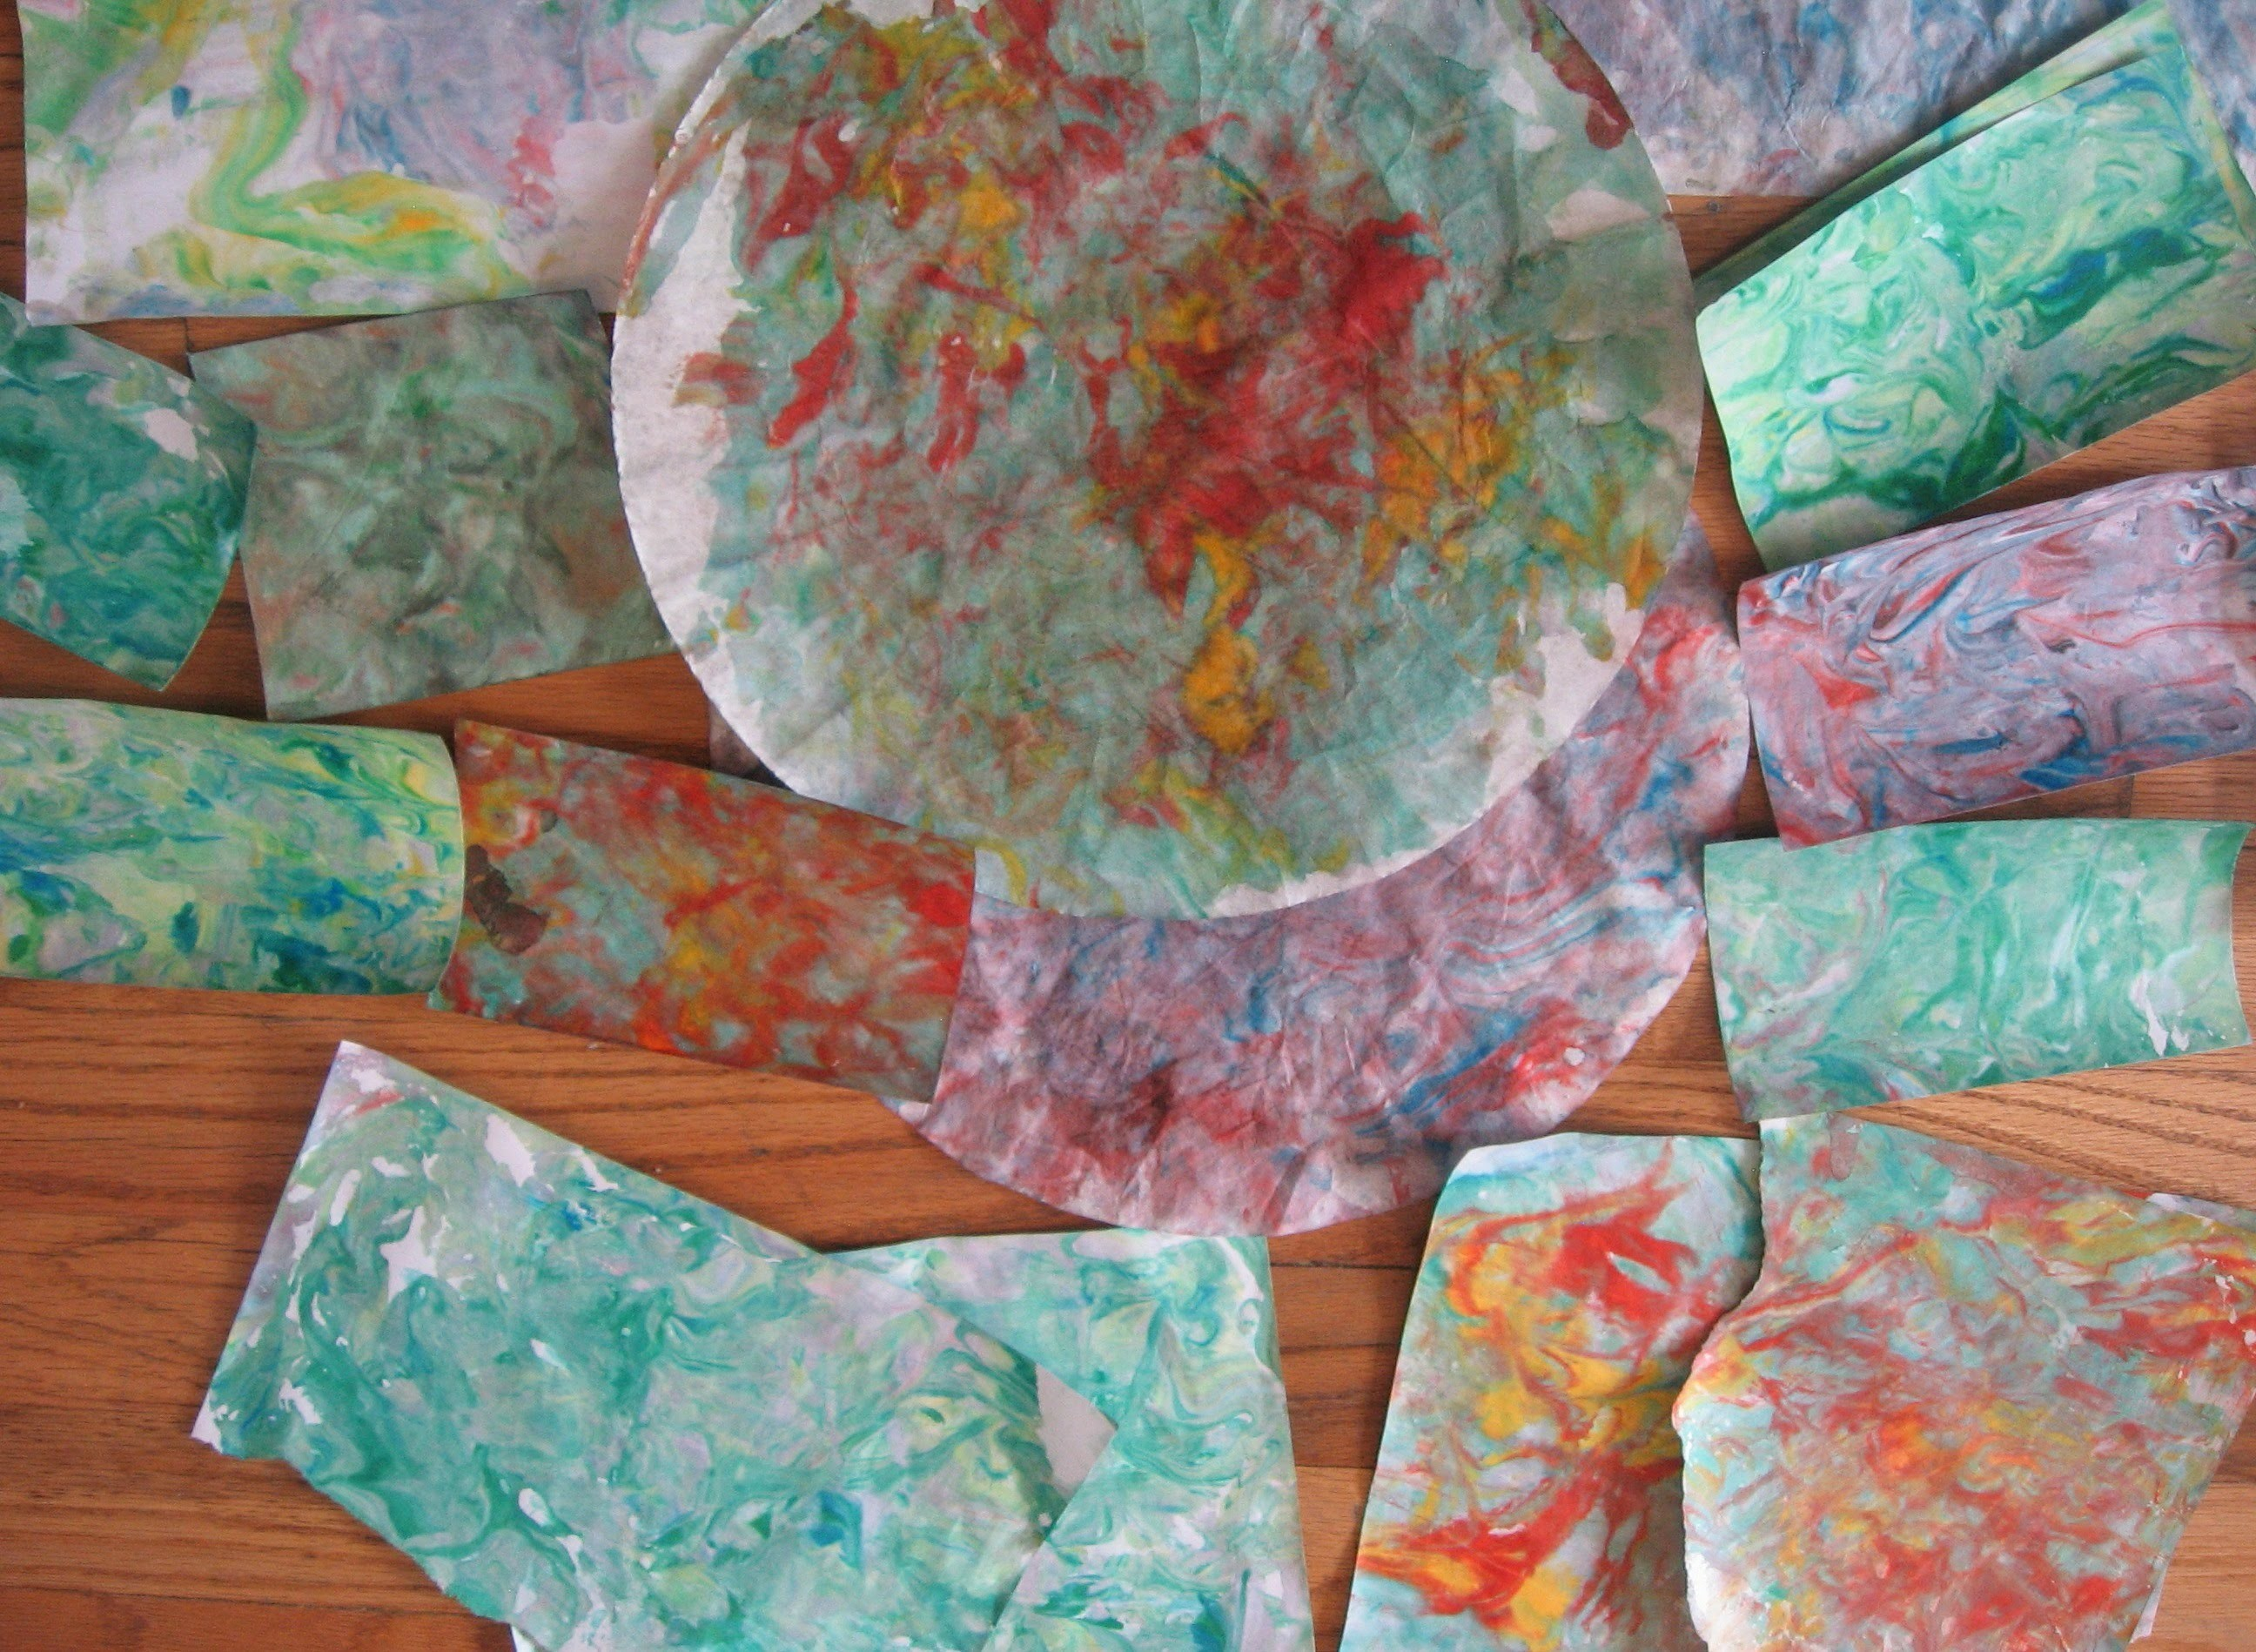 How to make marble paper with shaving Cream. DIY Paper Marbling ( tutorial) ( inspired by Michele S)